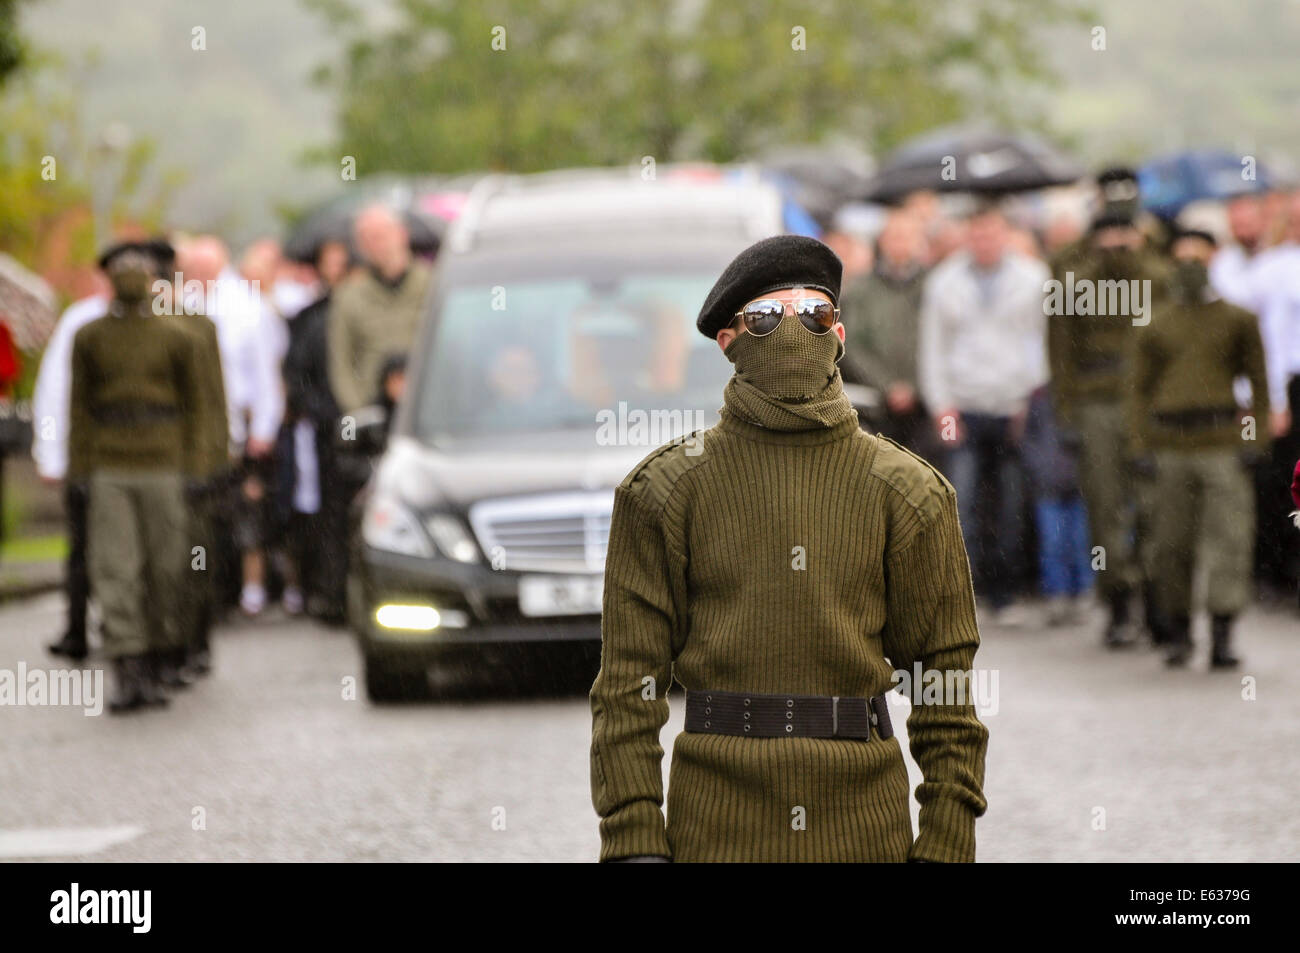 Belfast, Northern Ireland. 13 August 2014. Paramilitary funeral of veteran IRA volunteer Tony Catney Credit:  Stephen Stock Photo